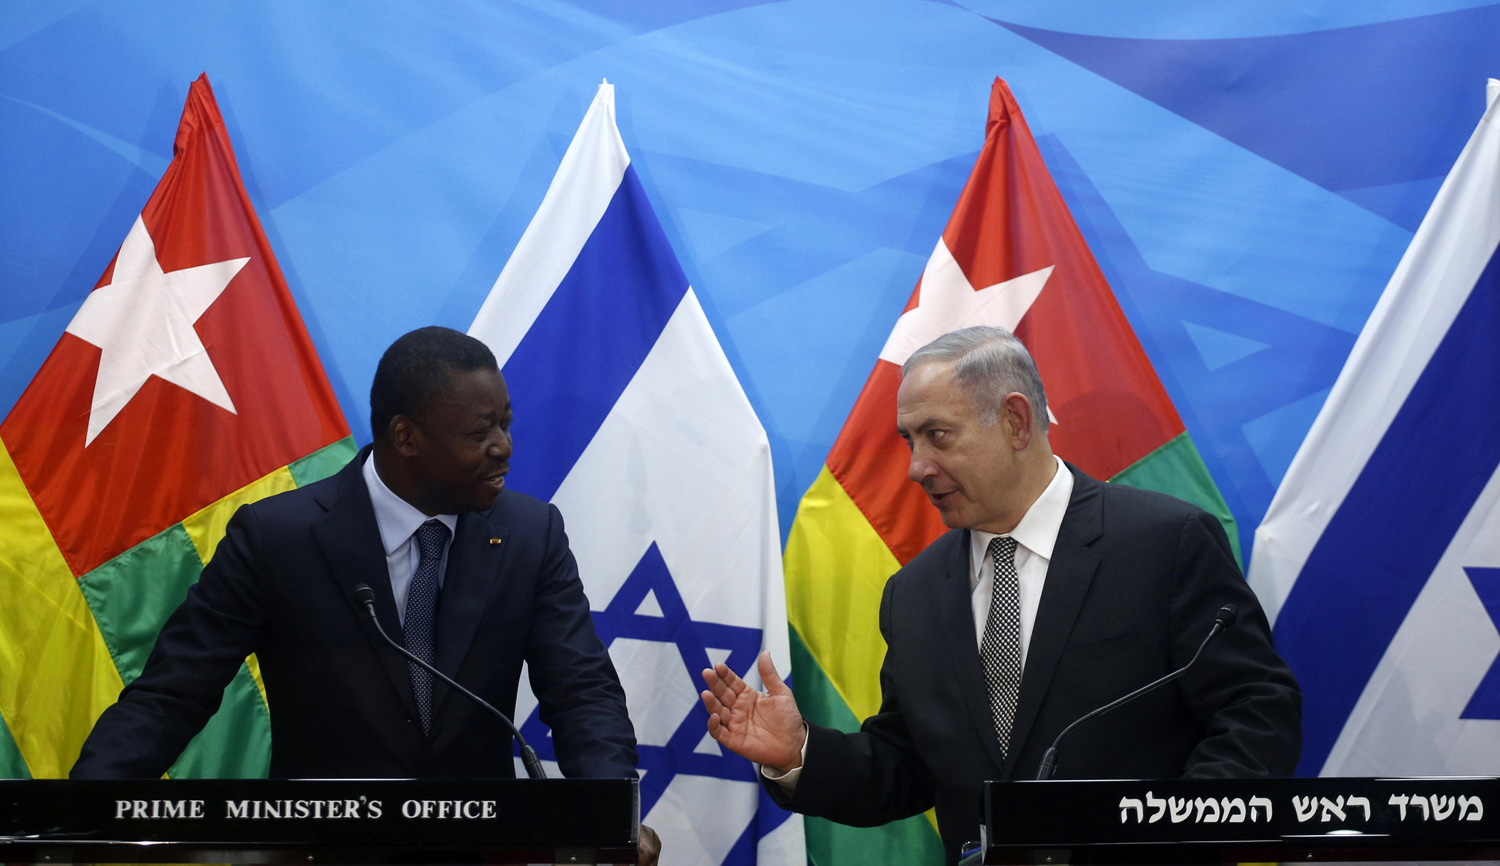 Benjamin Netanyahu talks to Togolese president Faure Gnassingbe on August 10, 2016 in Jerusalem. RONEN ZVULUN/AFP/Getty Images.